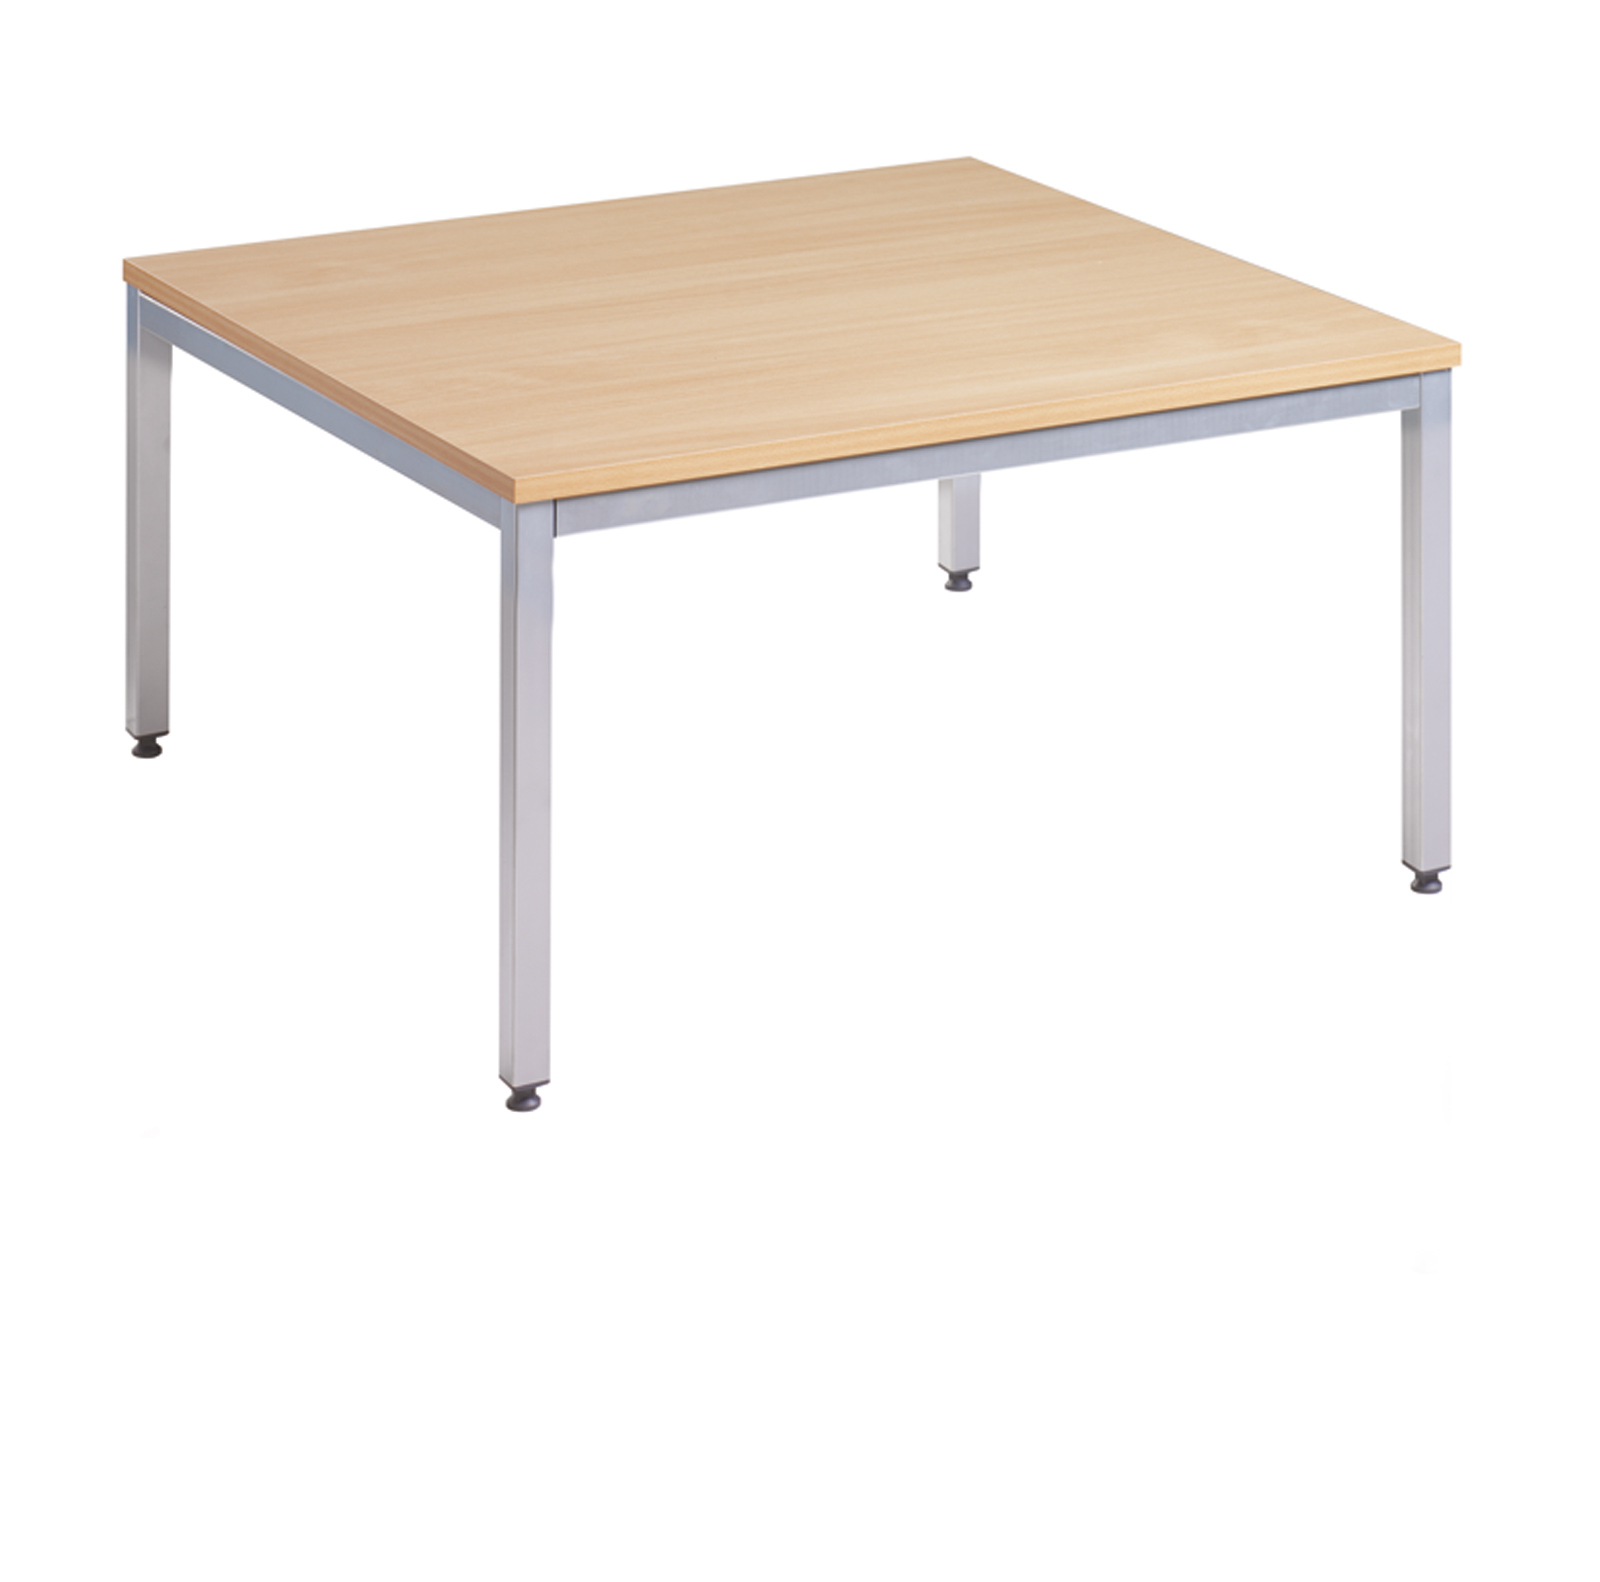 Reception coffee table square 800x800x460mm silveroak city reception coffee table square 800x800x460mm silveroak geotapseo Images